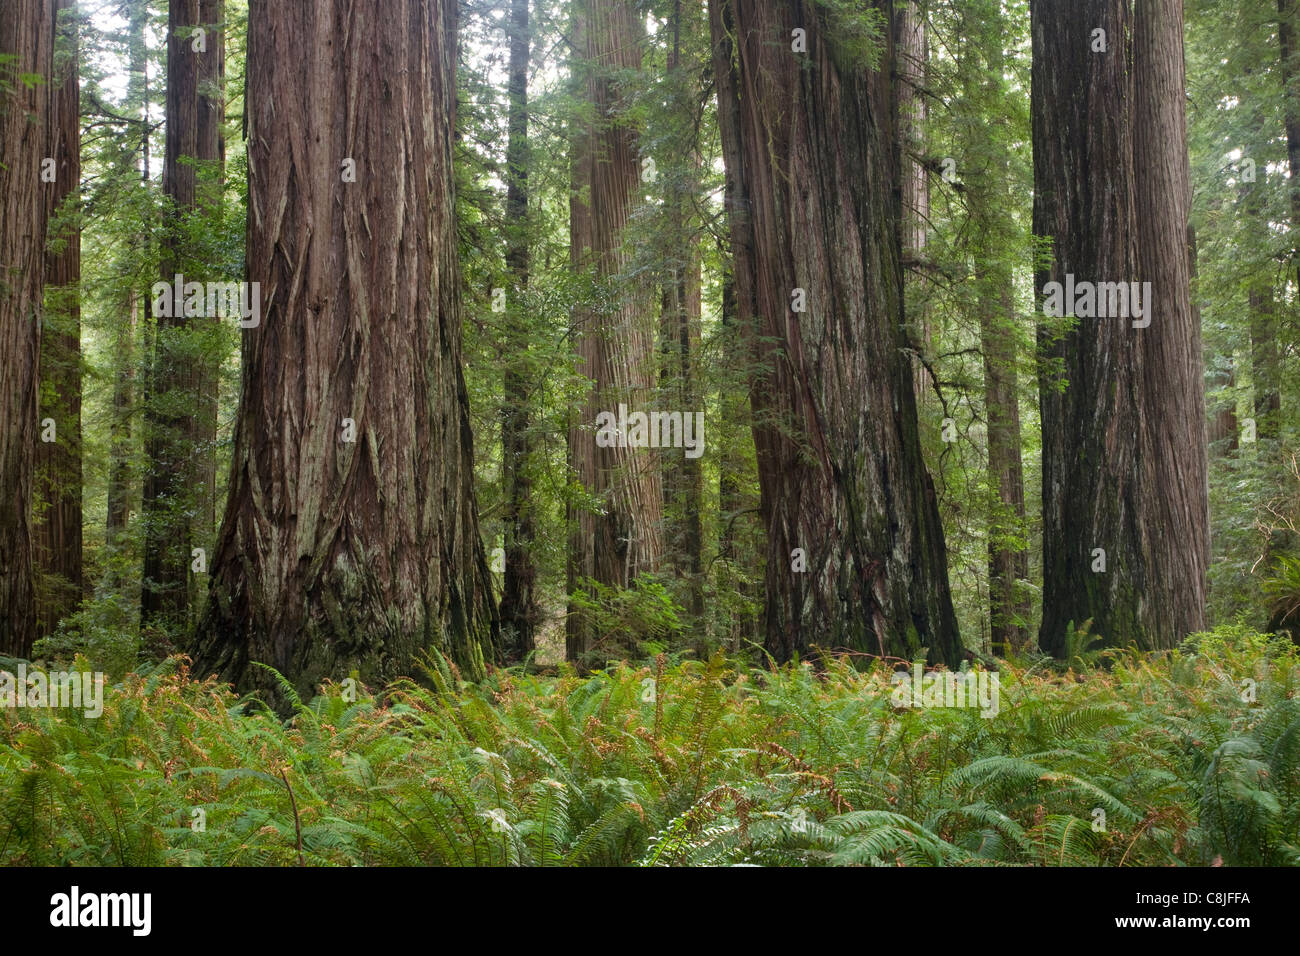 CALIFORNIA - Redwood forest in Stout Grove of Jedediah Smith Redwoods State Park part of the Redwood National and - Stock Image